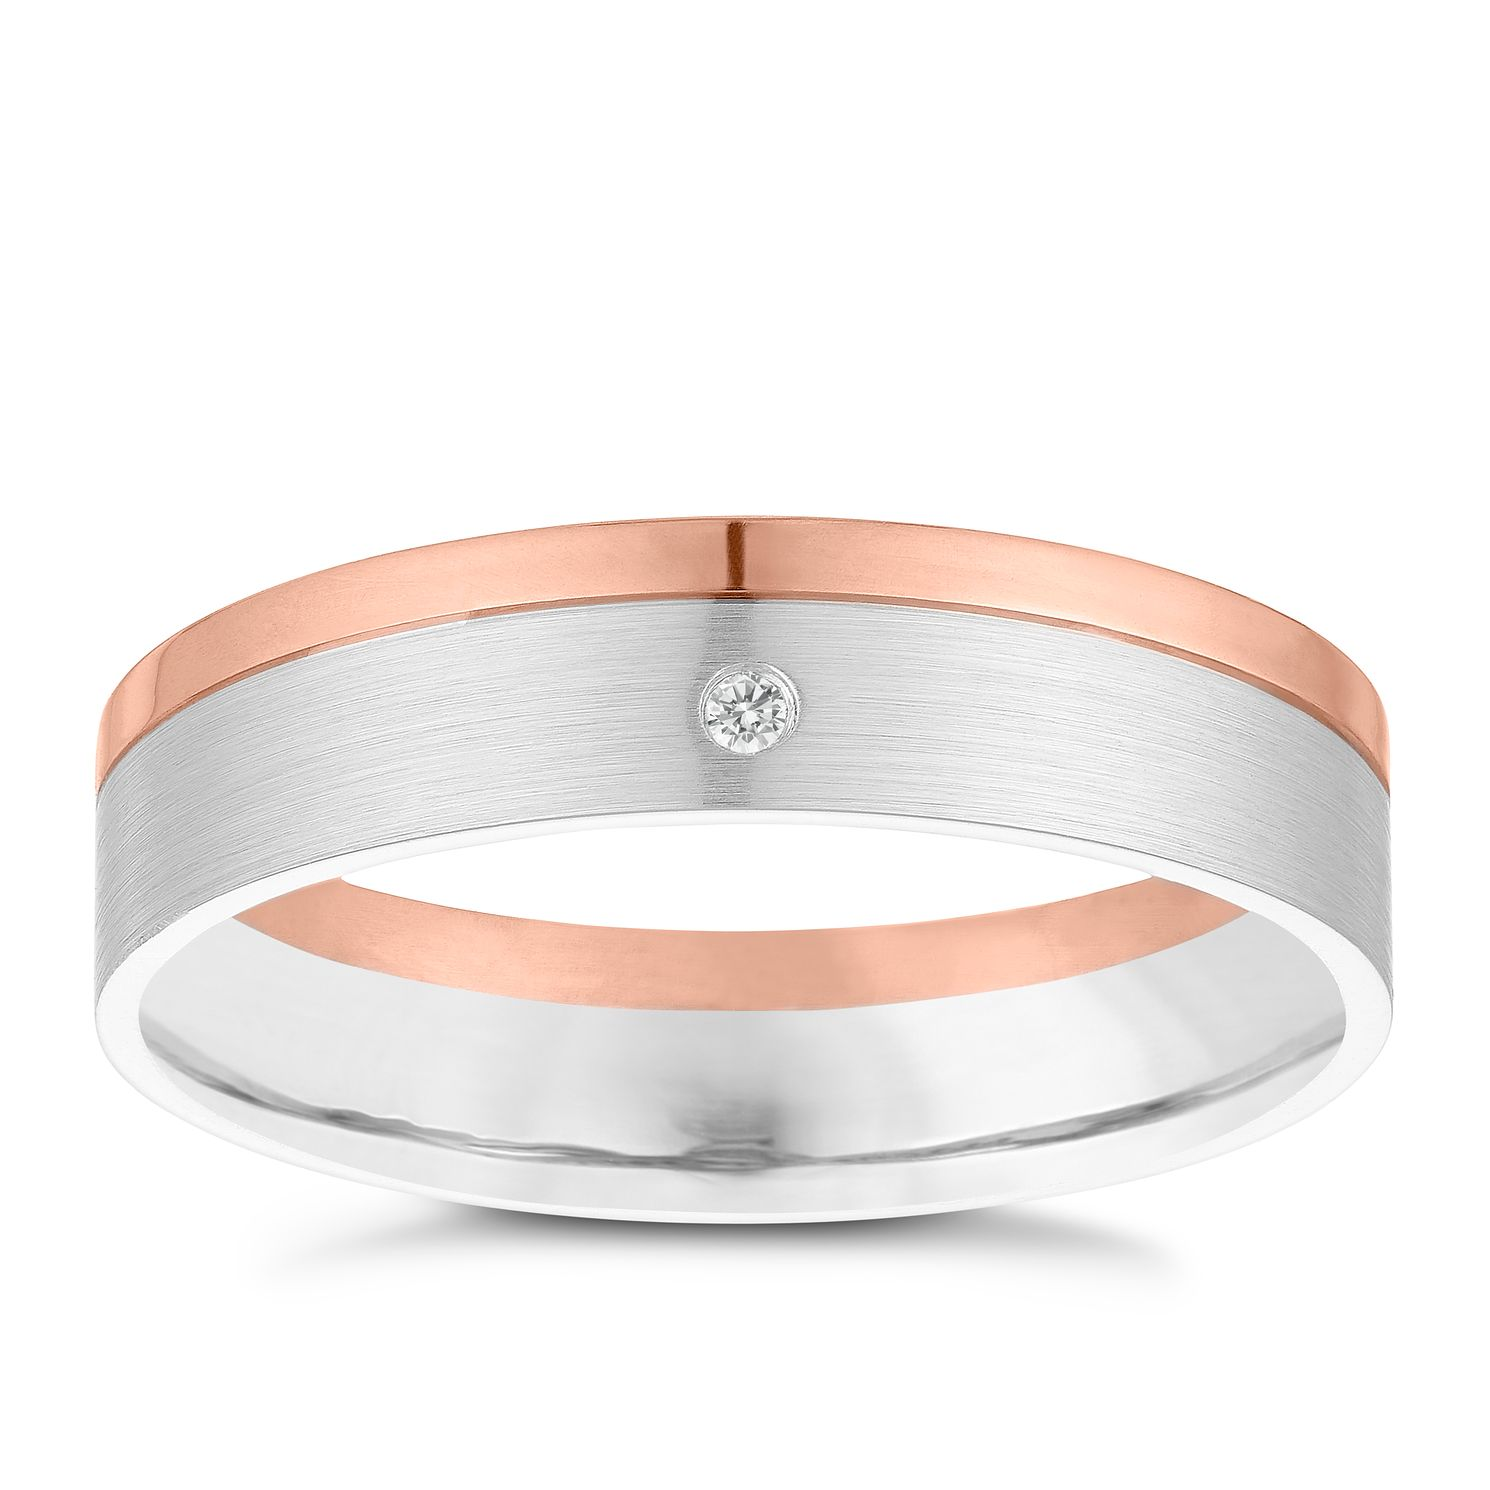 9ct White & Rose Gold Diamond Wedding Ring - Product number 3967751